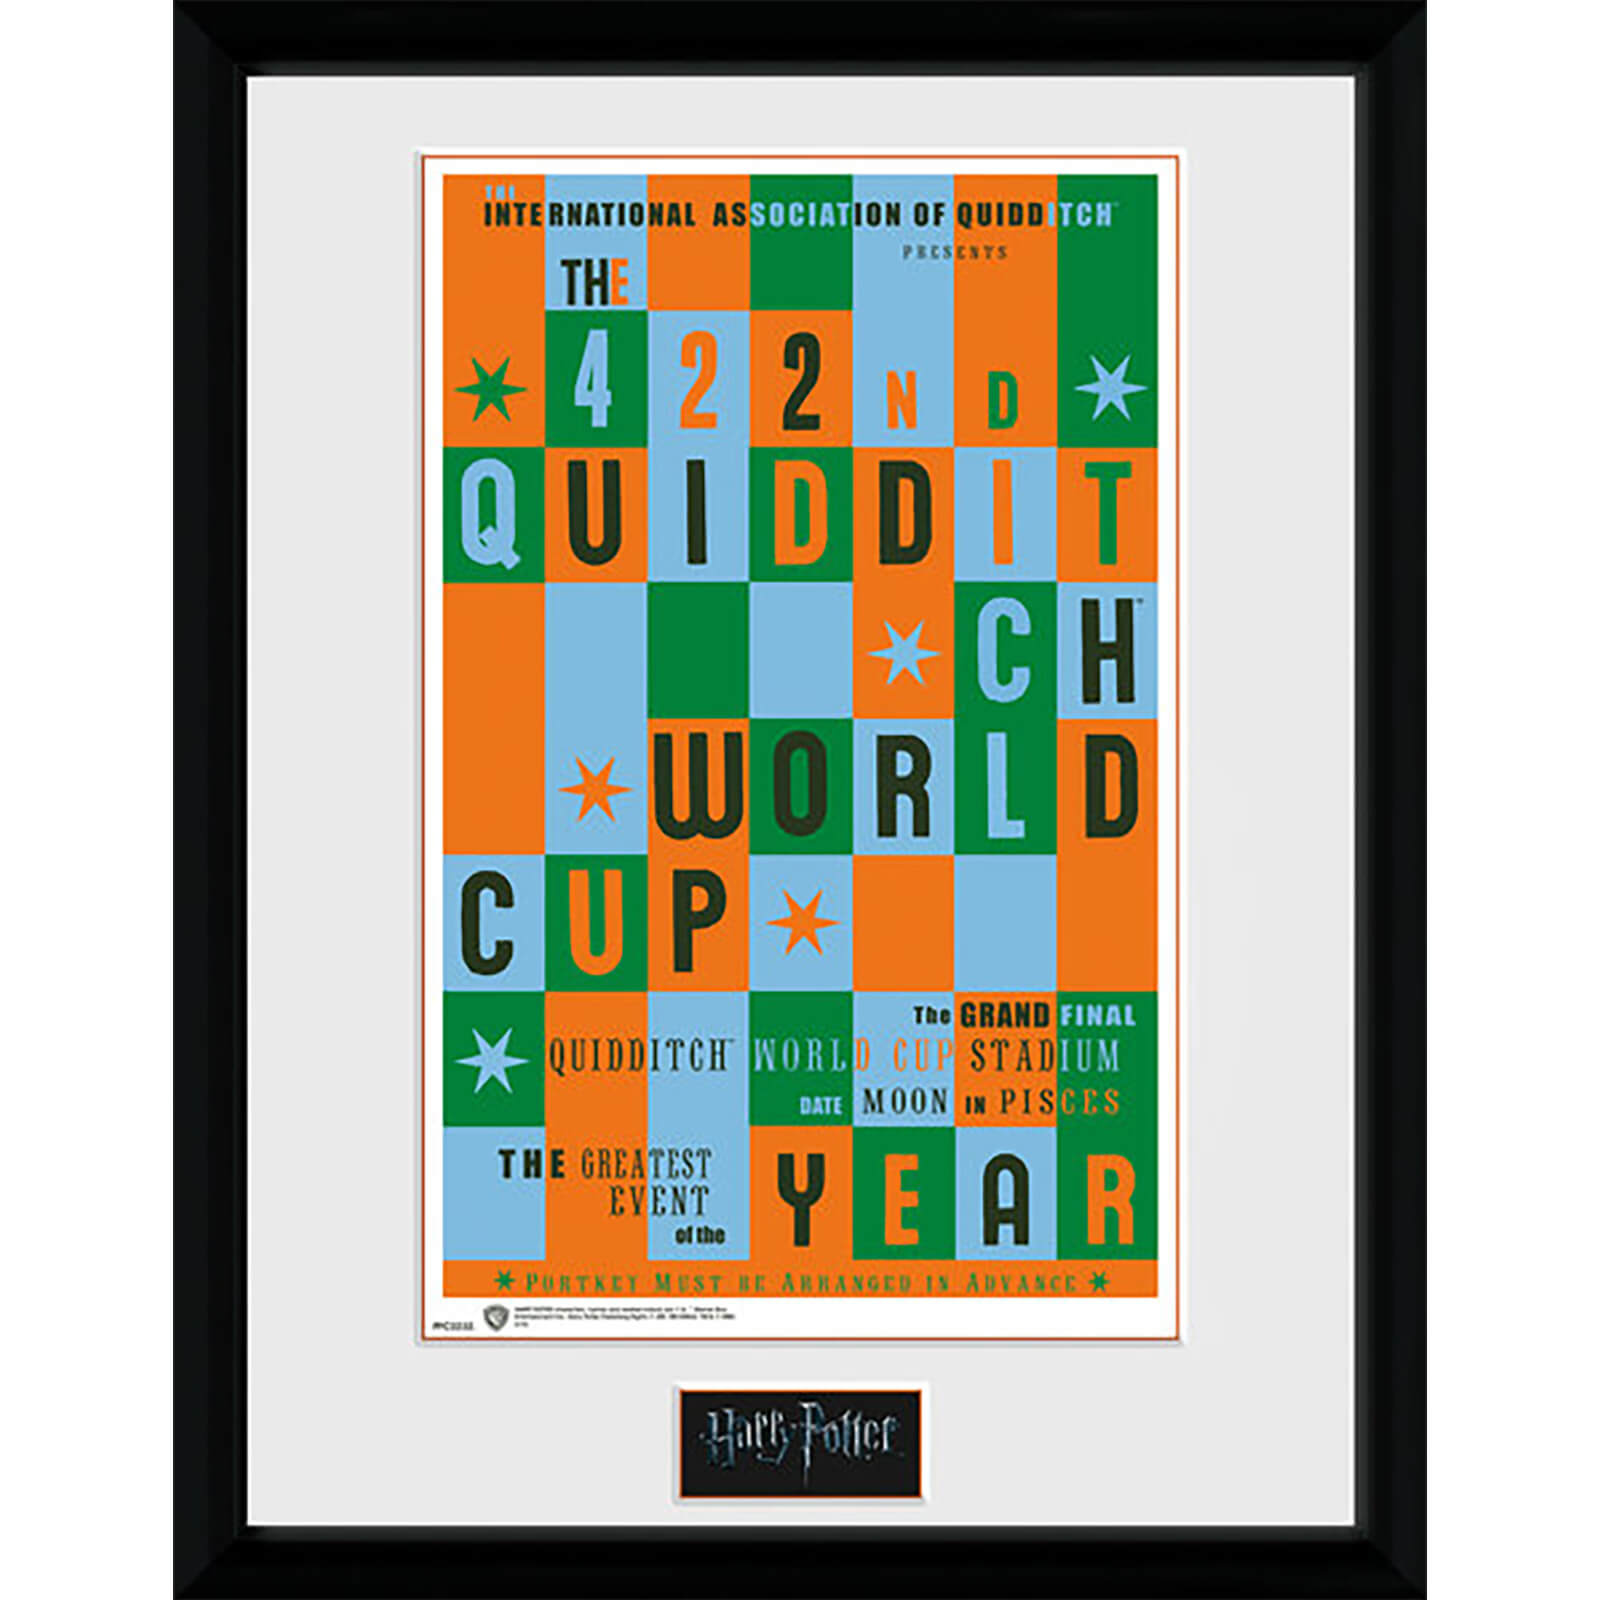 Harry Potter Quidditch World Cup - 16 x 12 Inches Framed Photograph